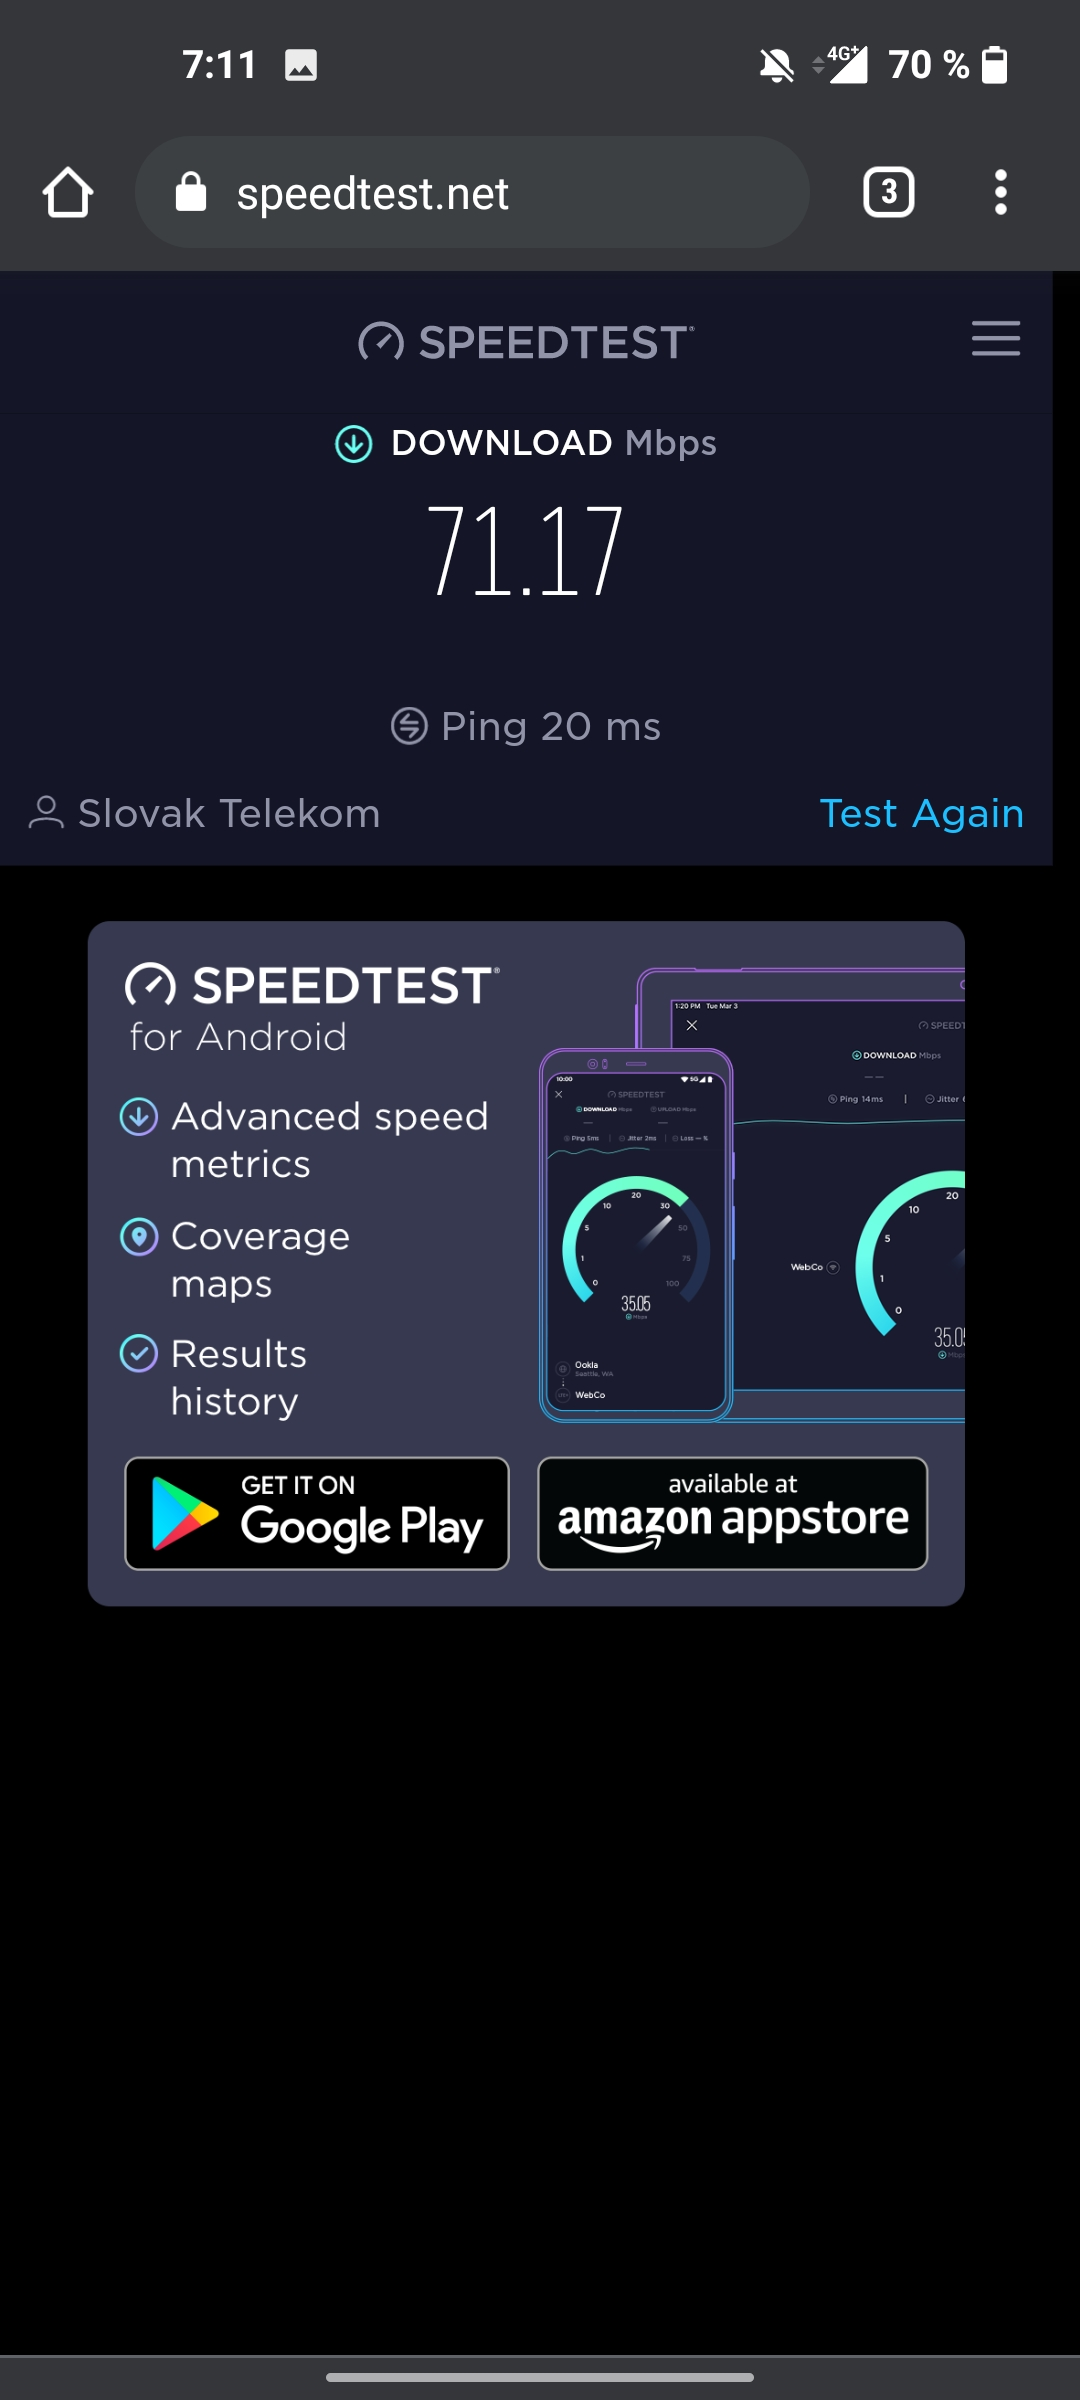 OnePlus Nord CE 5G test 4G